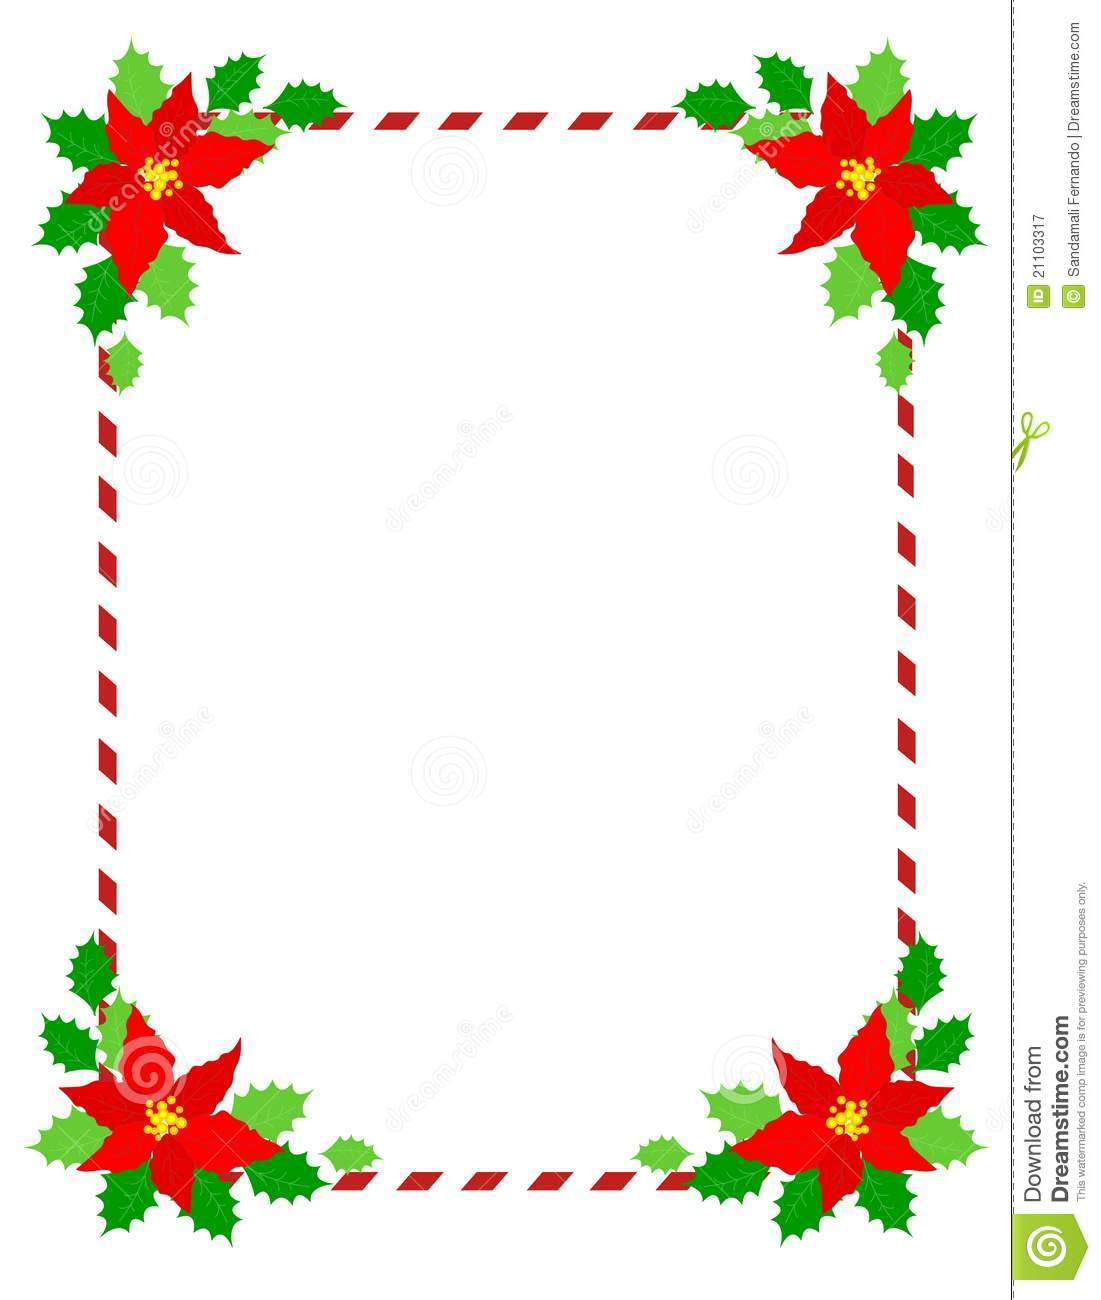 Christmas Frame Poinsettia Royalty Free Stock Photography - Image ...